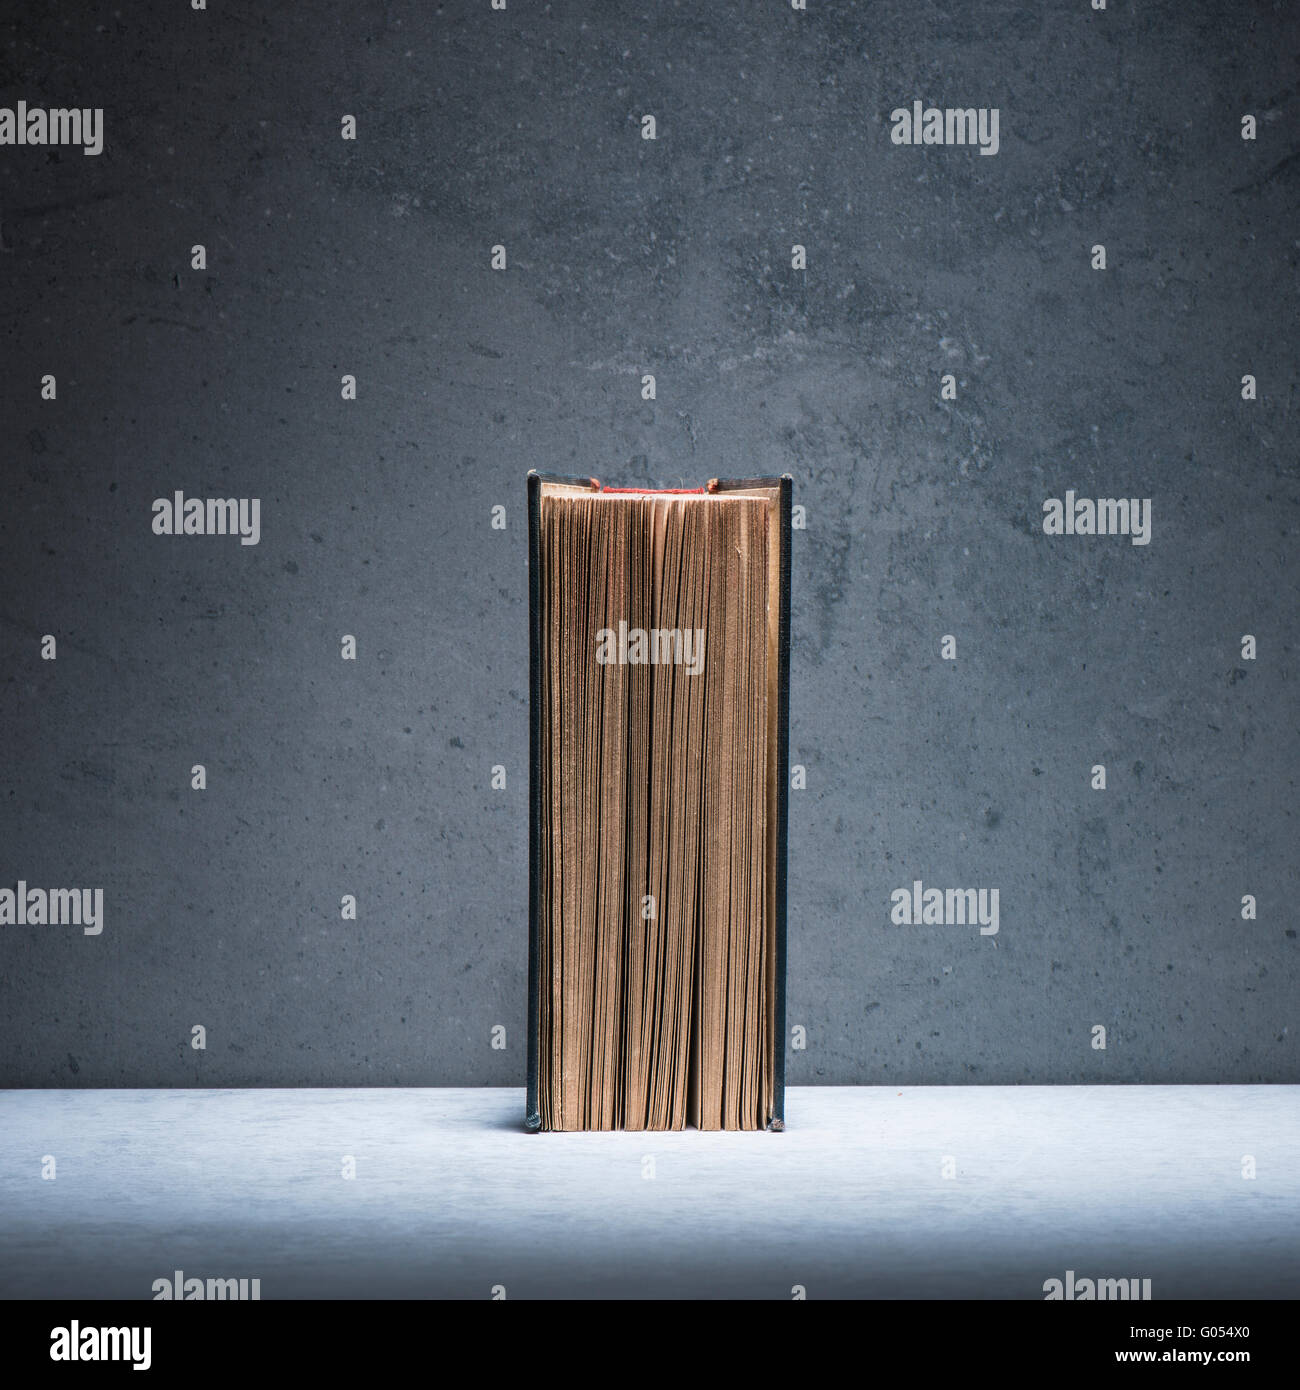 Old vintage book on stone table. Still life with copyspace. Concept of literature, education and history. - Stock Image